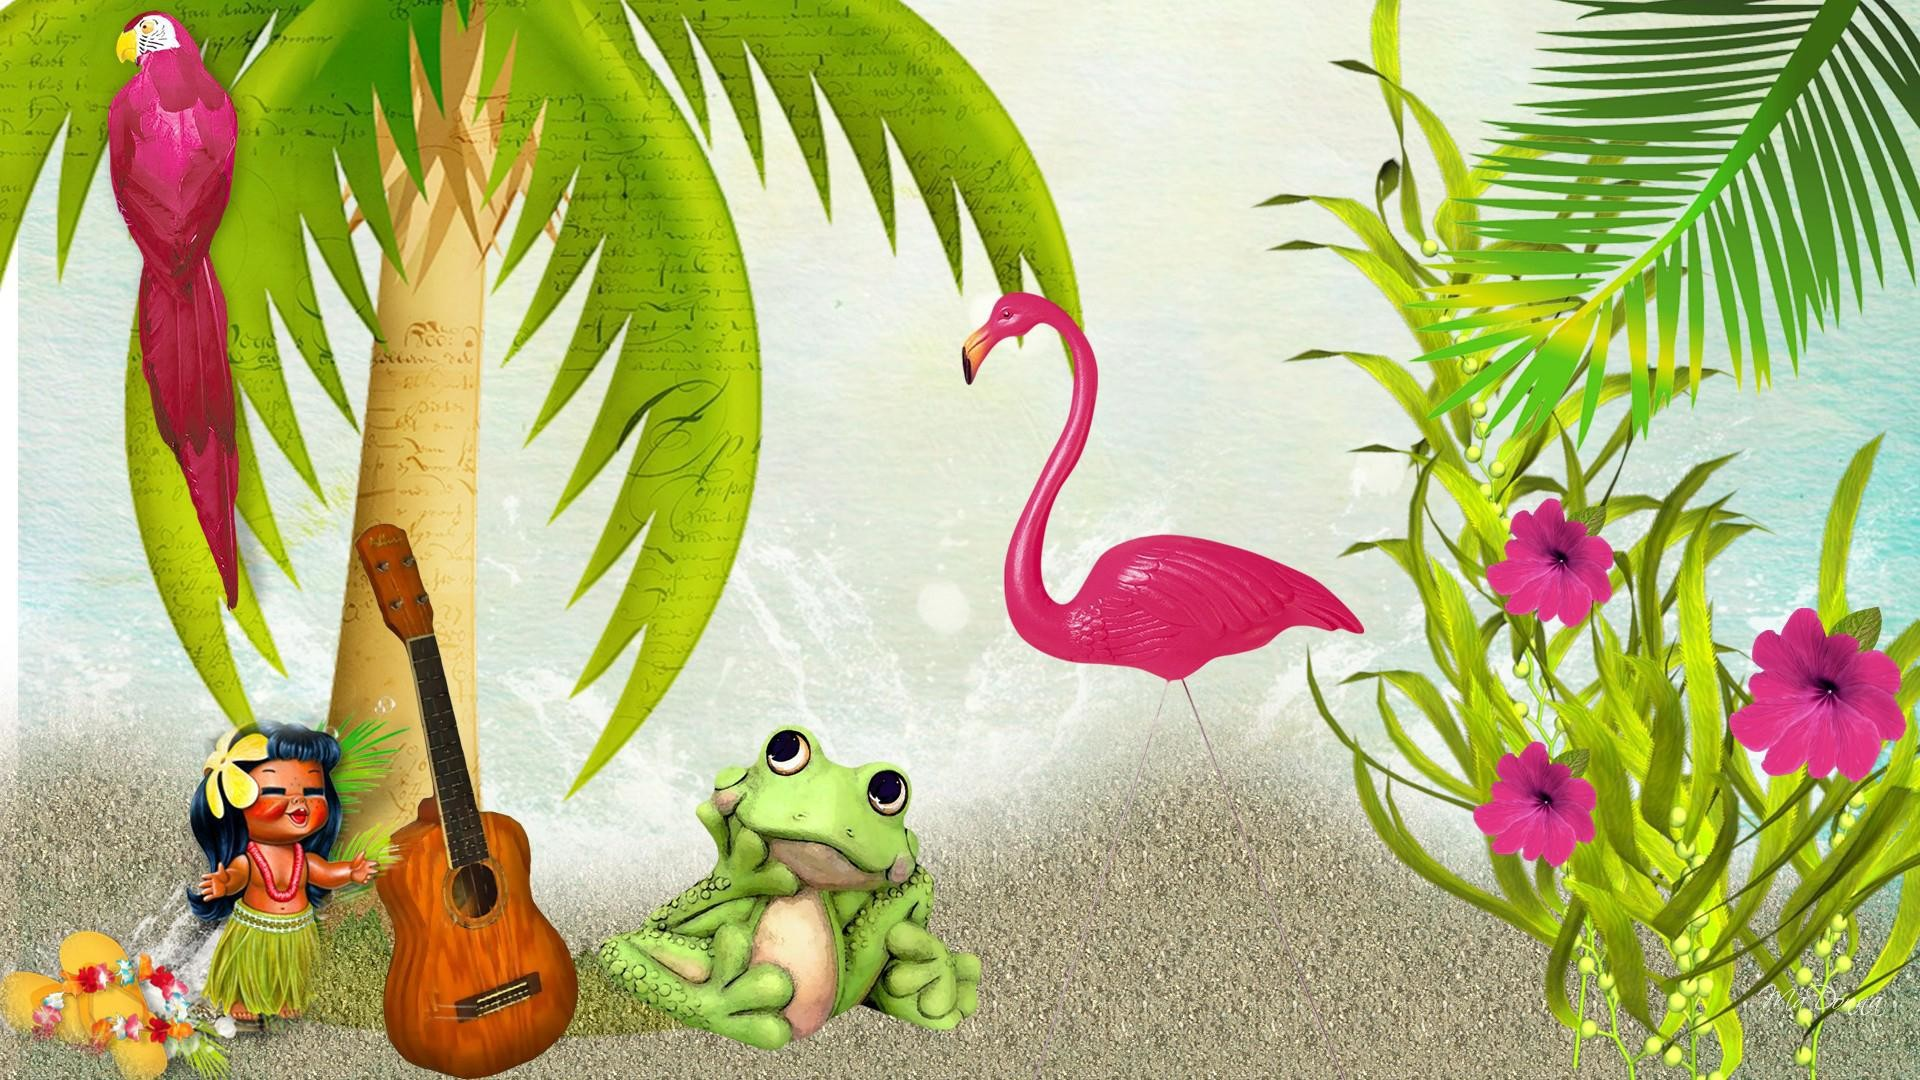 Res: 1920x1080, Froggy Vacation